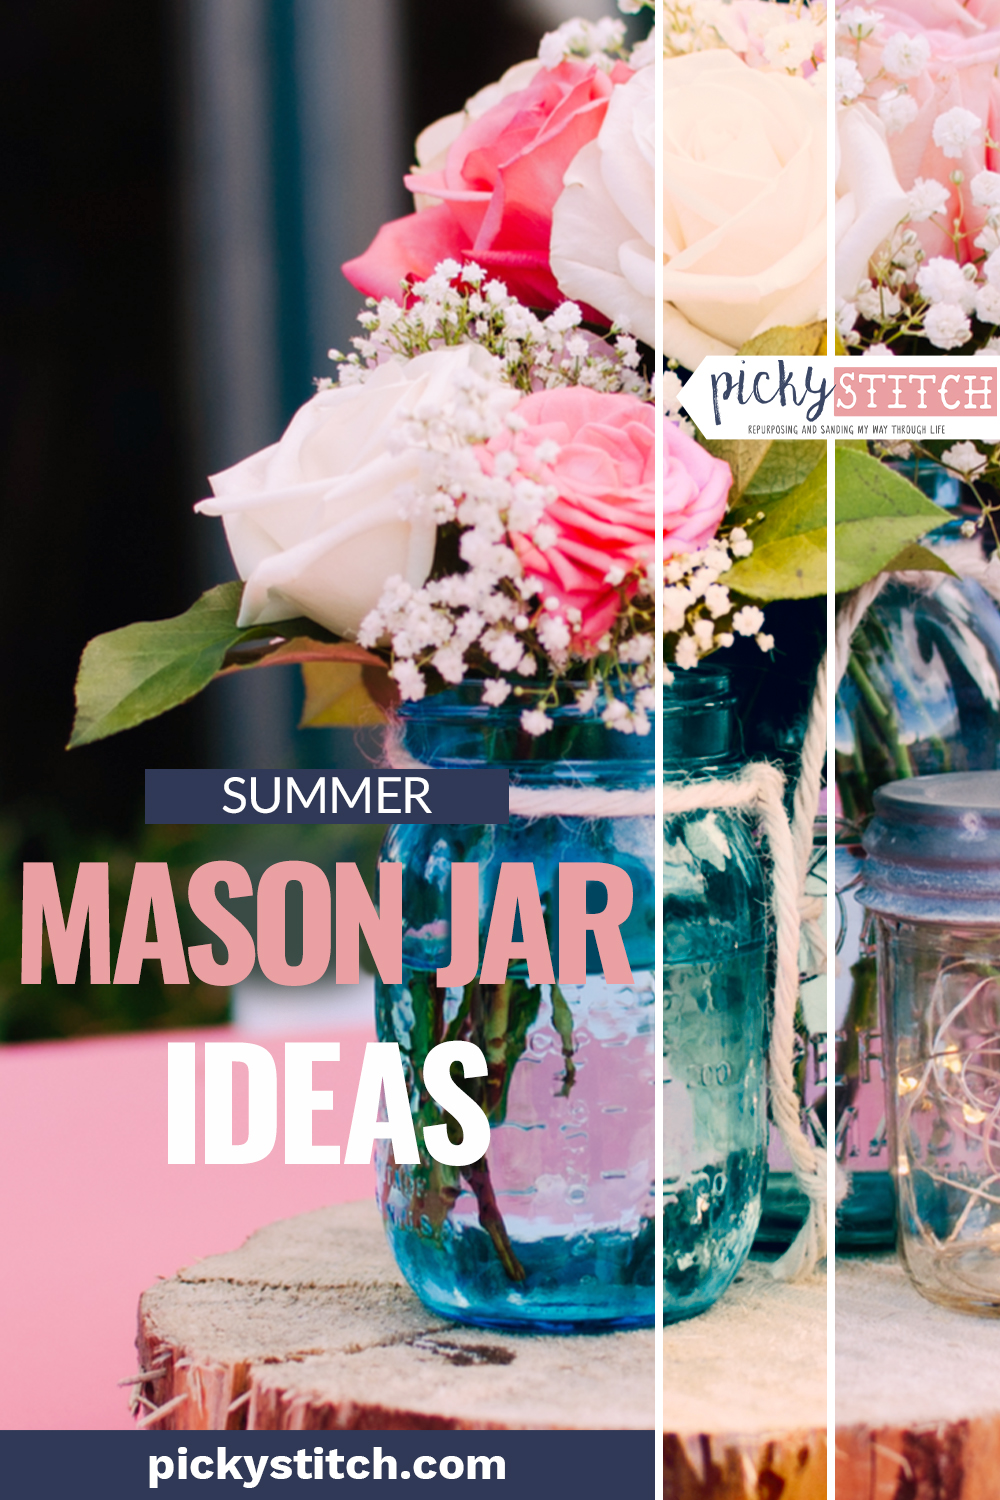 Summer Mason Jar Ideas Craft Projects Decor Centerpieces Crafts Pickystitch Com